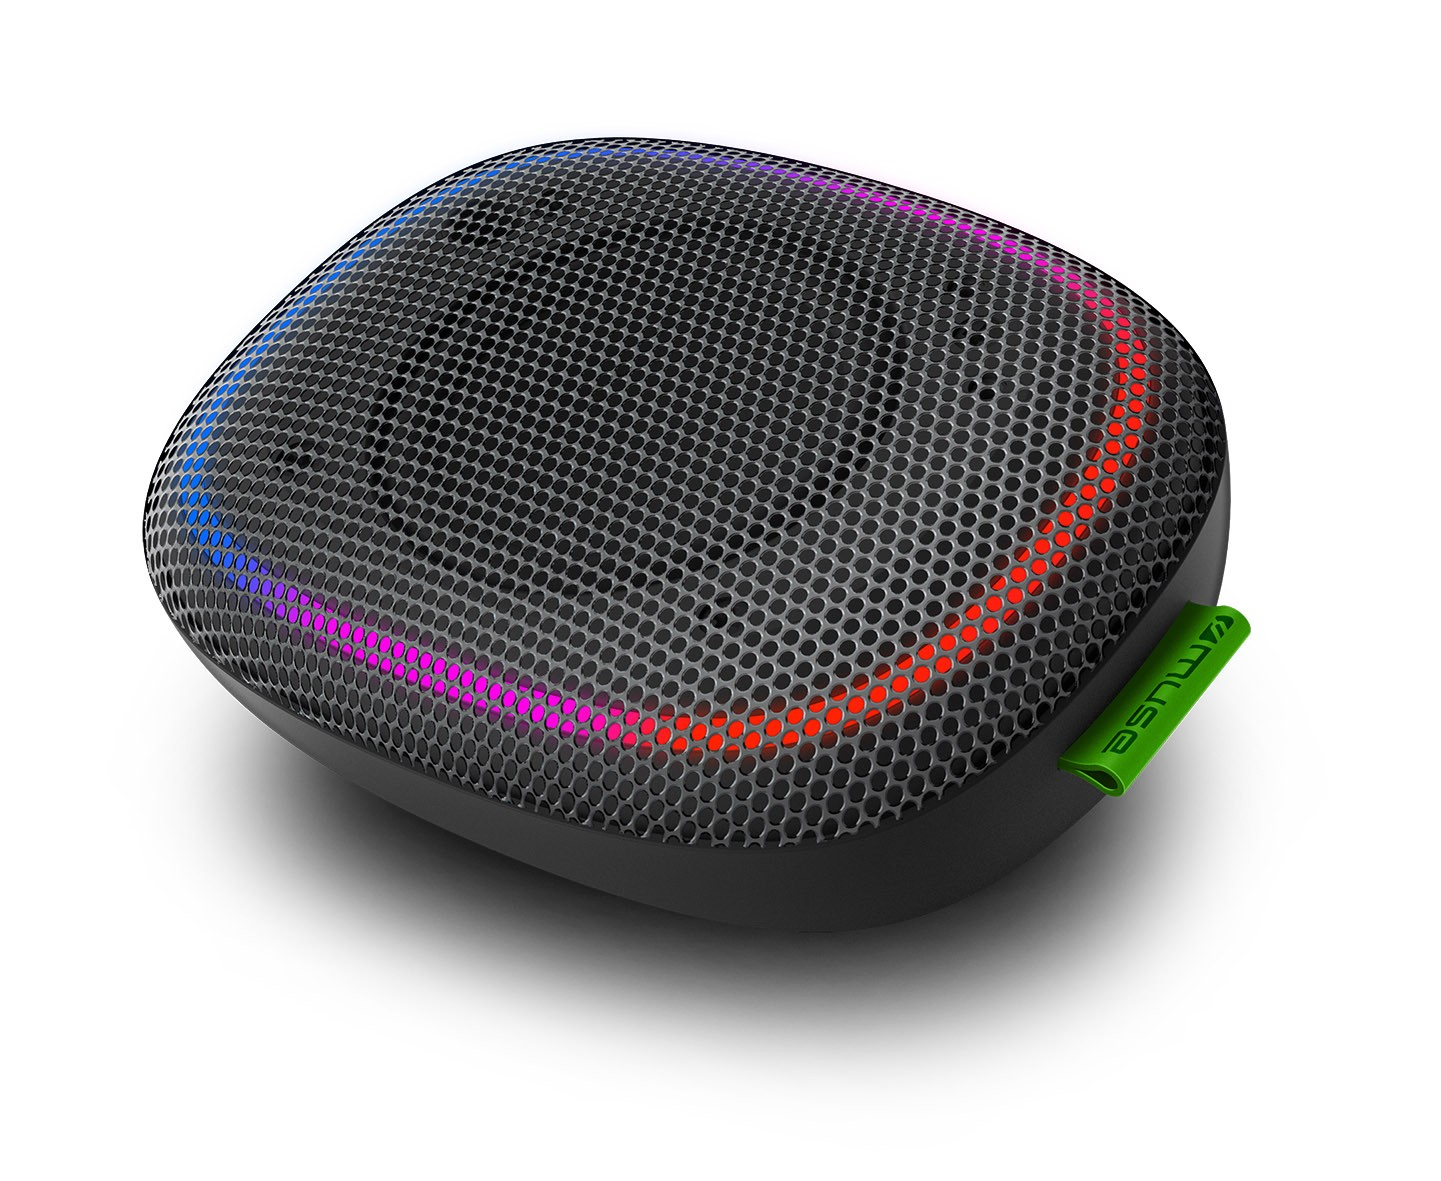 ENCEINTE BLUETOOTH PORTABLE 5W + LUMIERE AMBIANCE - MUSE